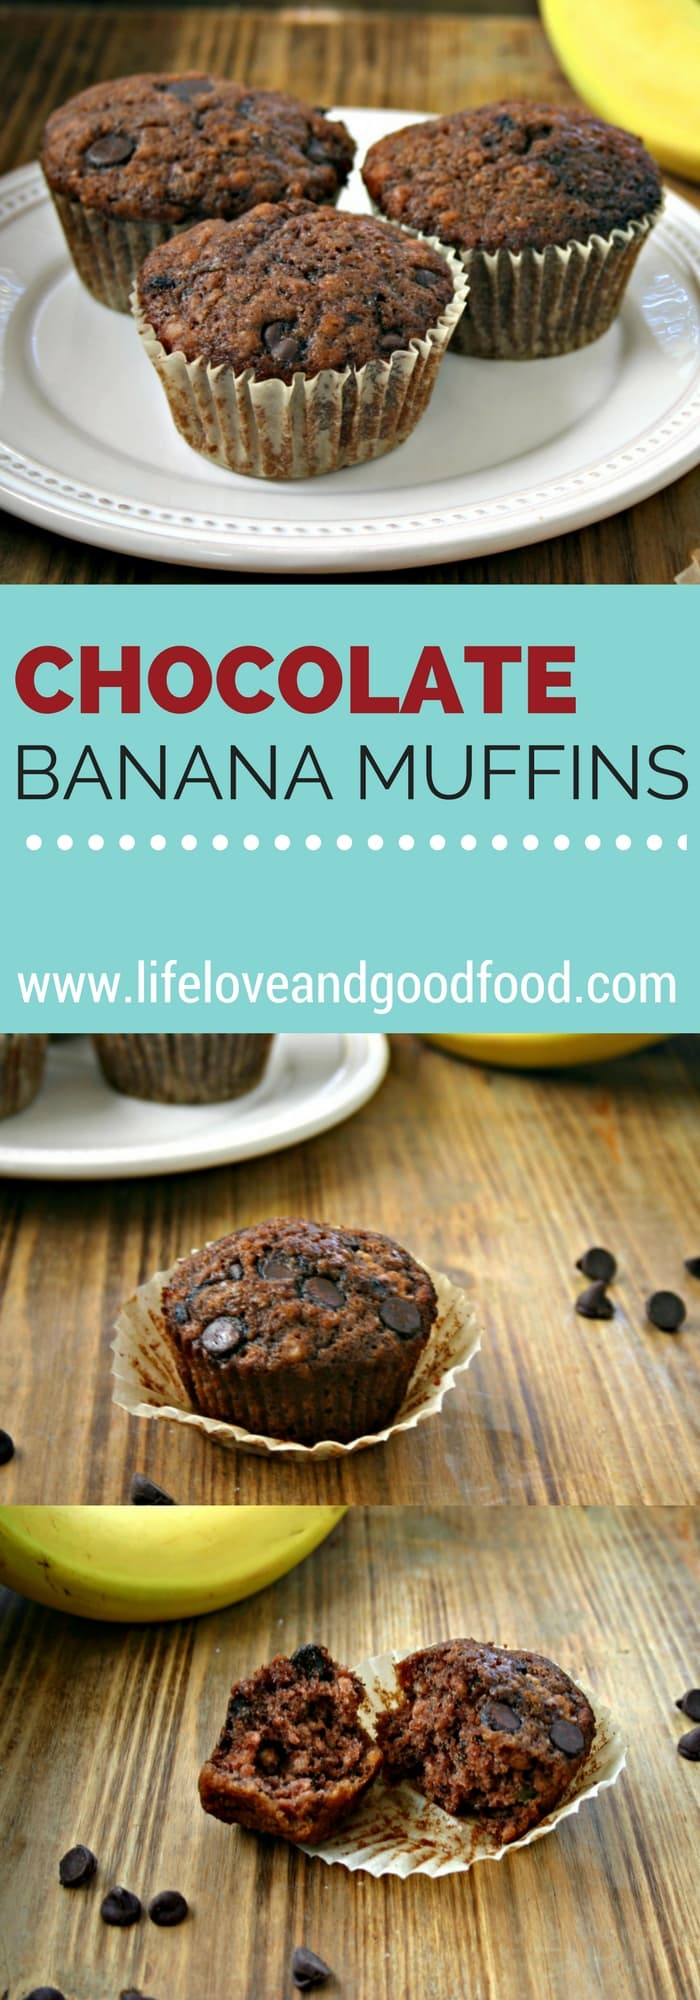 Chocolate Banana Muffins | Life, Love, and Good Food